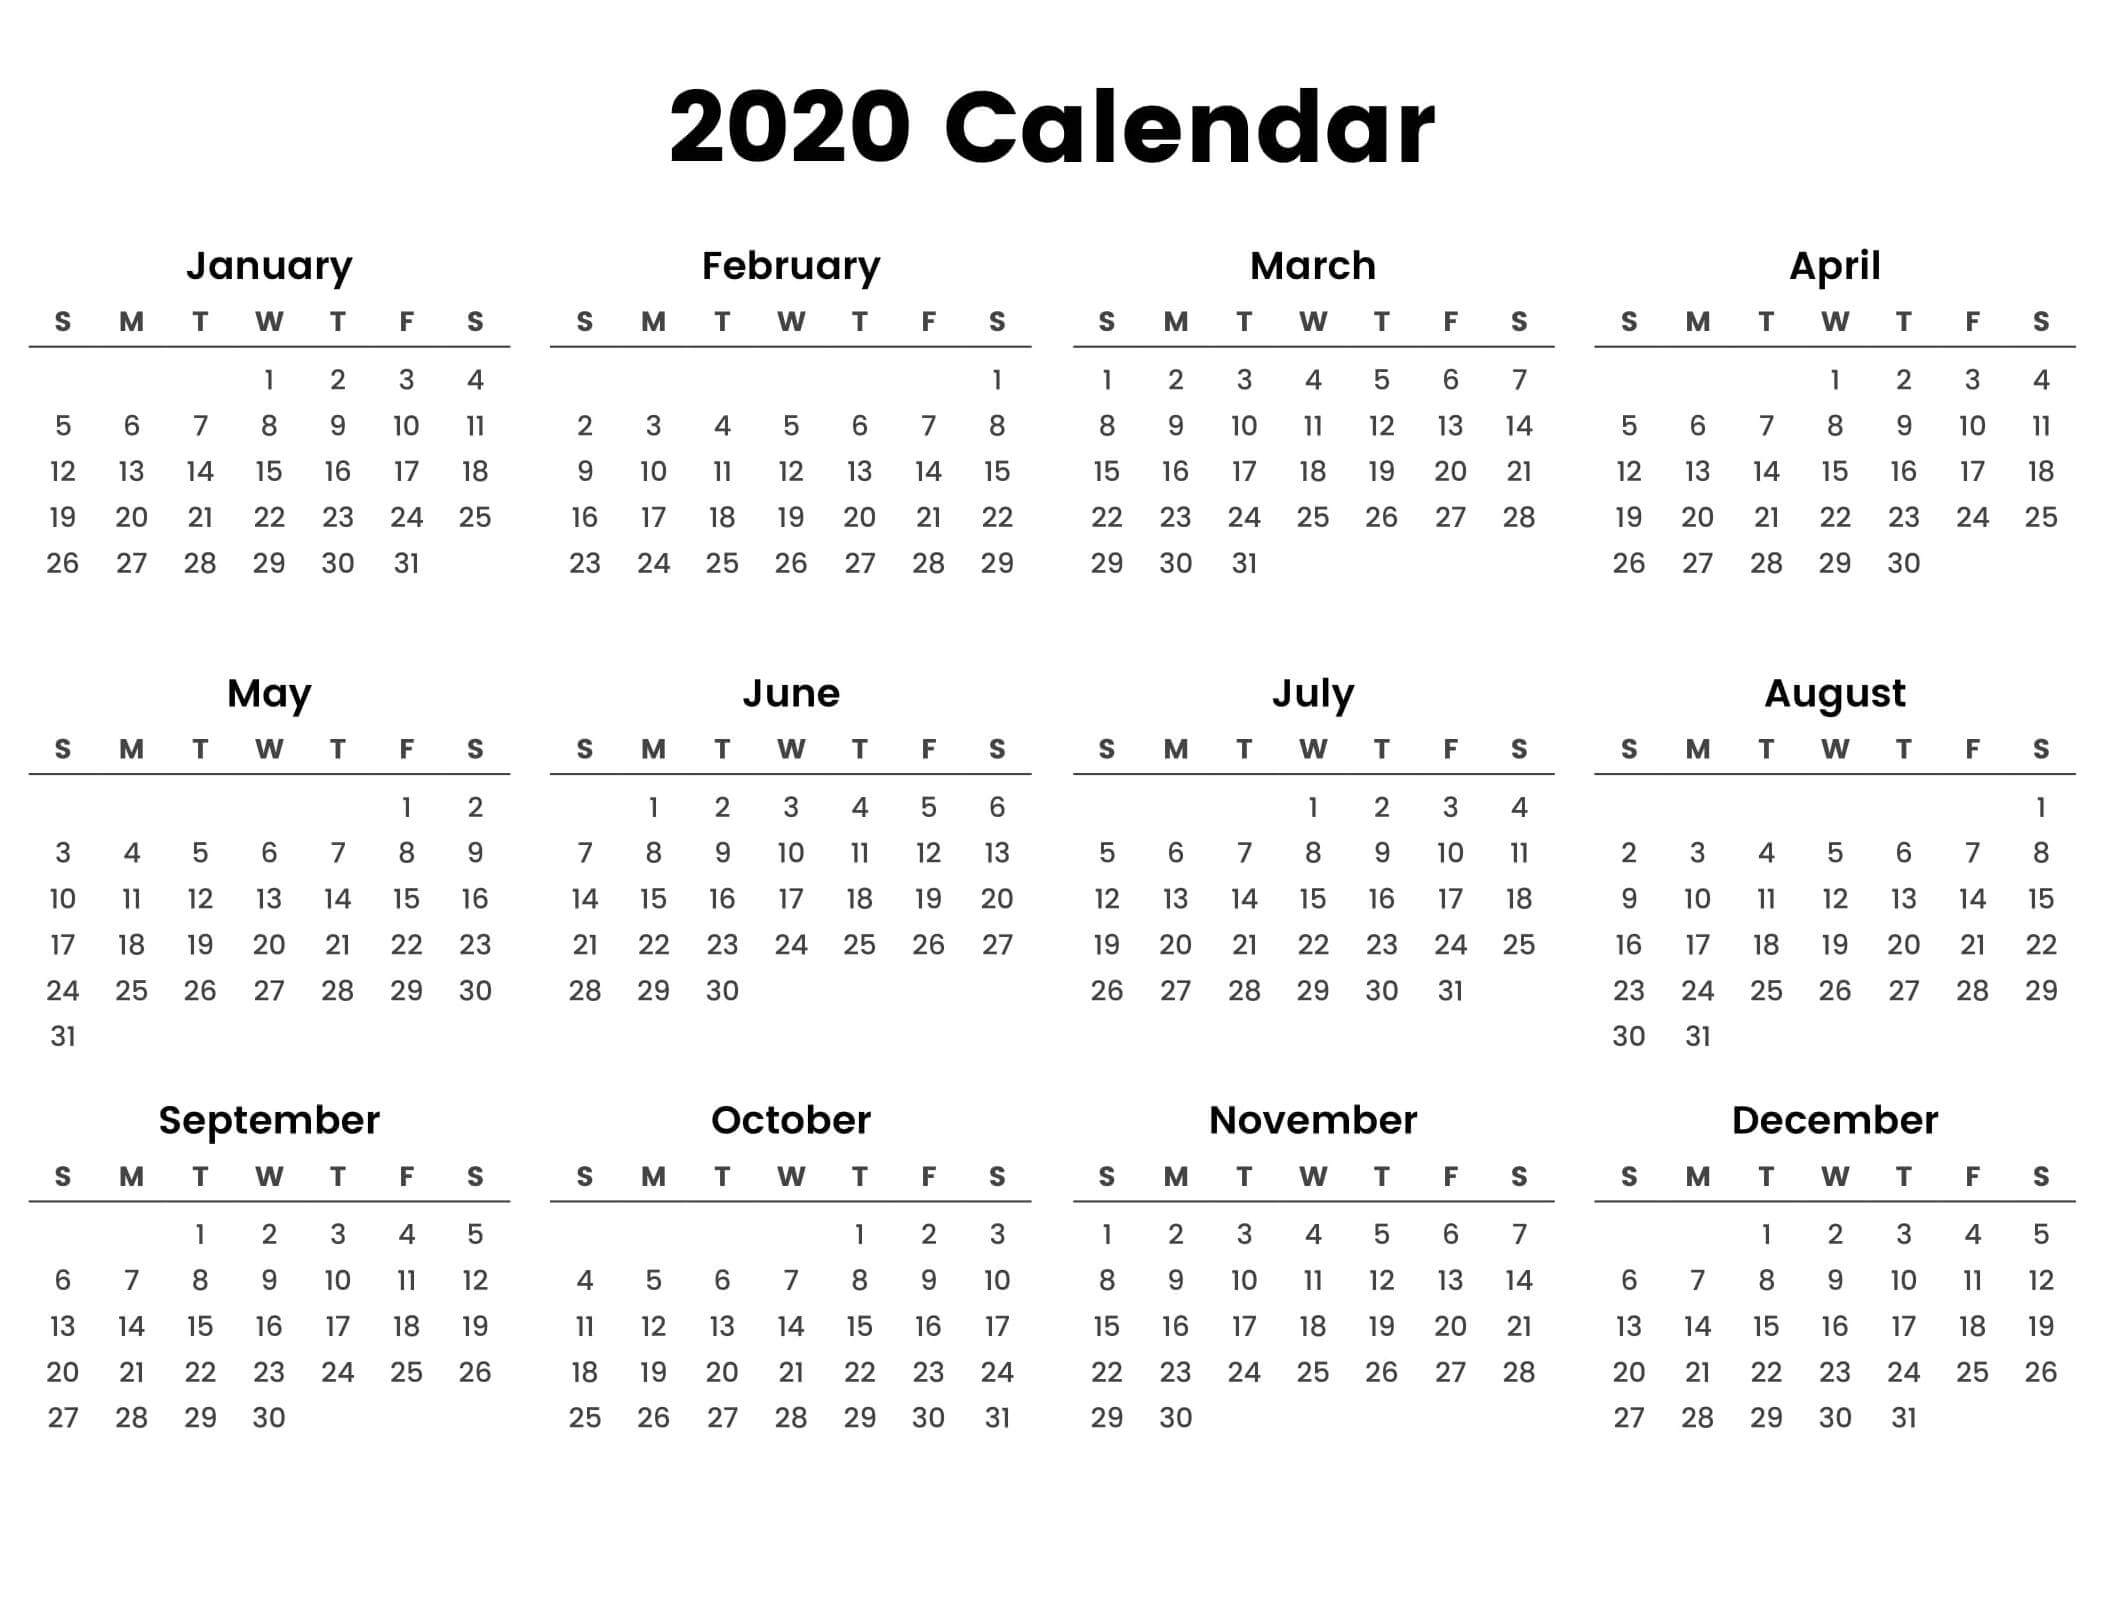 Large Yearly Calendar 2020 With Notes Pdf - Set Your Plan inside 2020 Year At A Glance Calendar